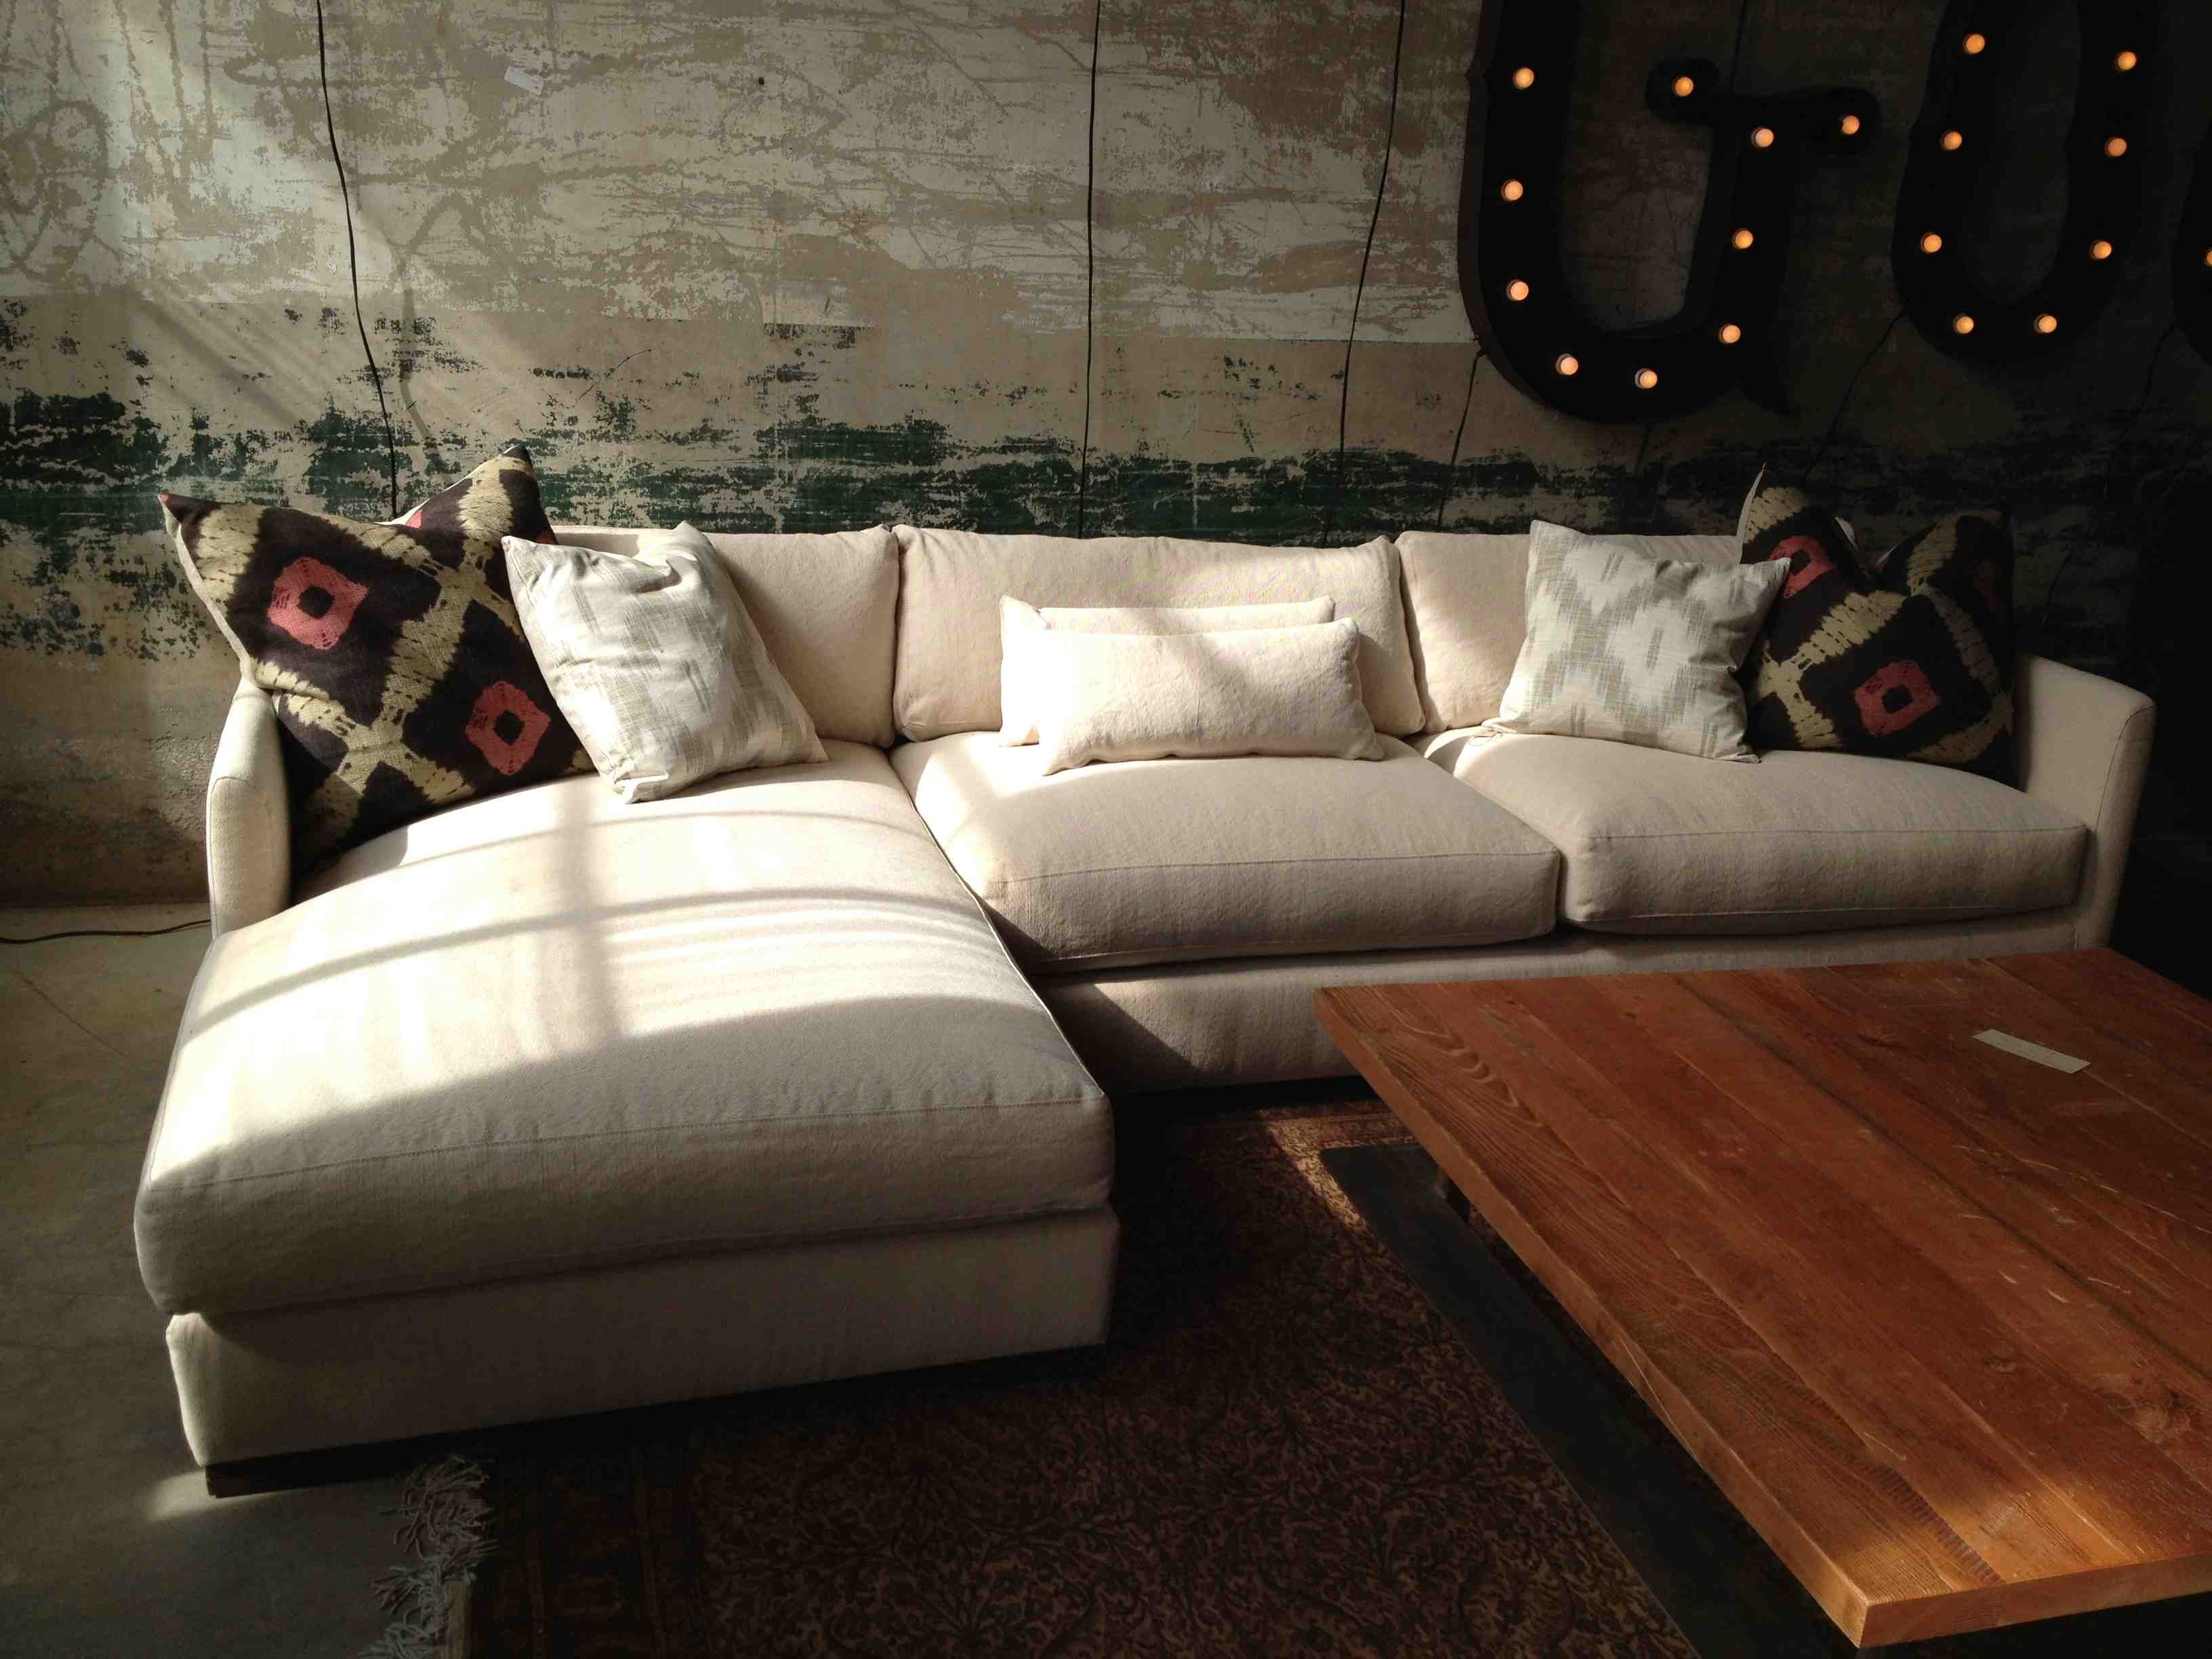 urbanite sofa cars couch bed cisco brothers dexter sectional 128wx28hx68d l andd rooms